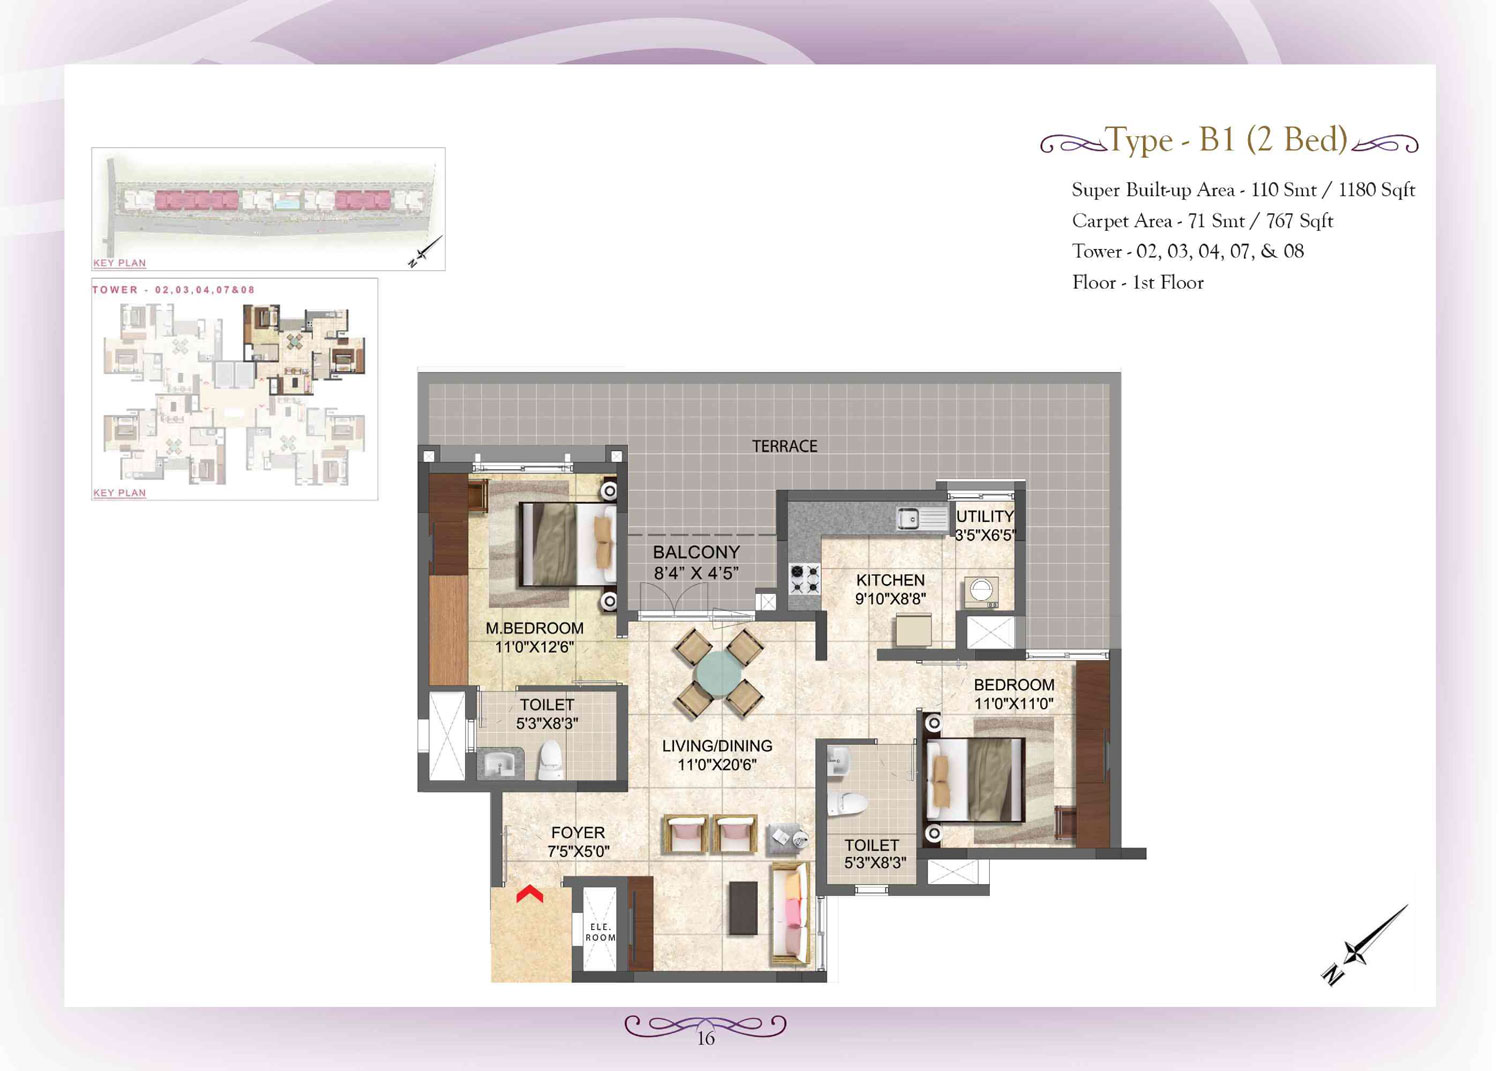 Type B1 - 2 Bed - 1180 Sq Ft